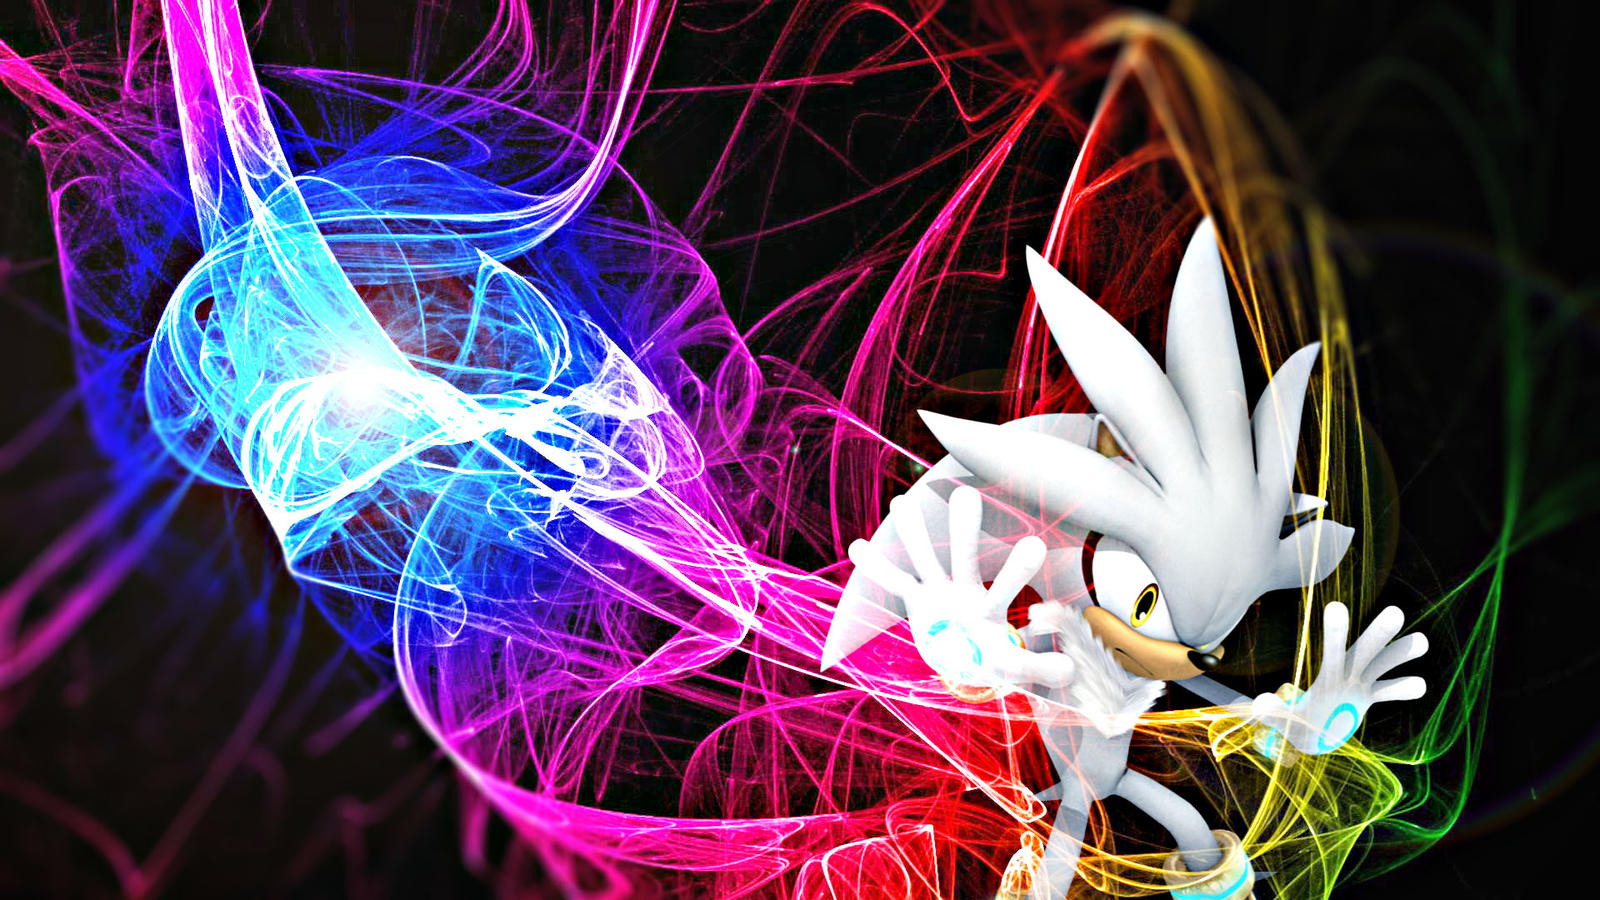 Neon Smoke Abstract Hd Wallpaper Silver Mode By